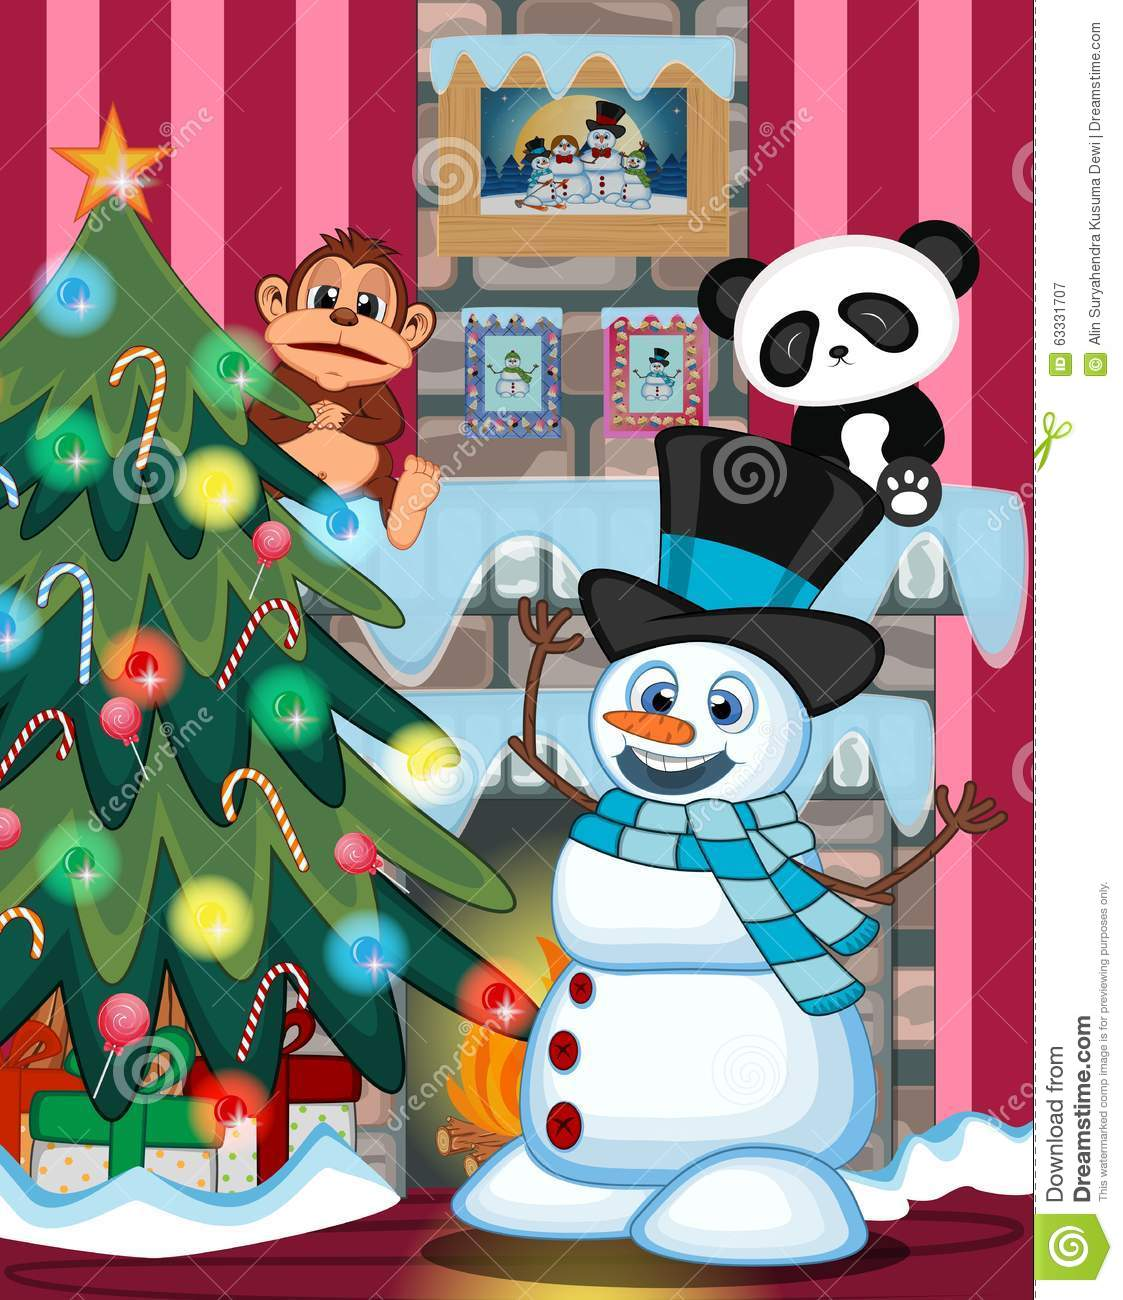 hight resolution of snowman wearing a hat and a blue scarf with christmas tree and